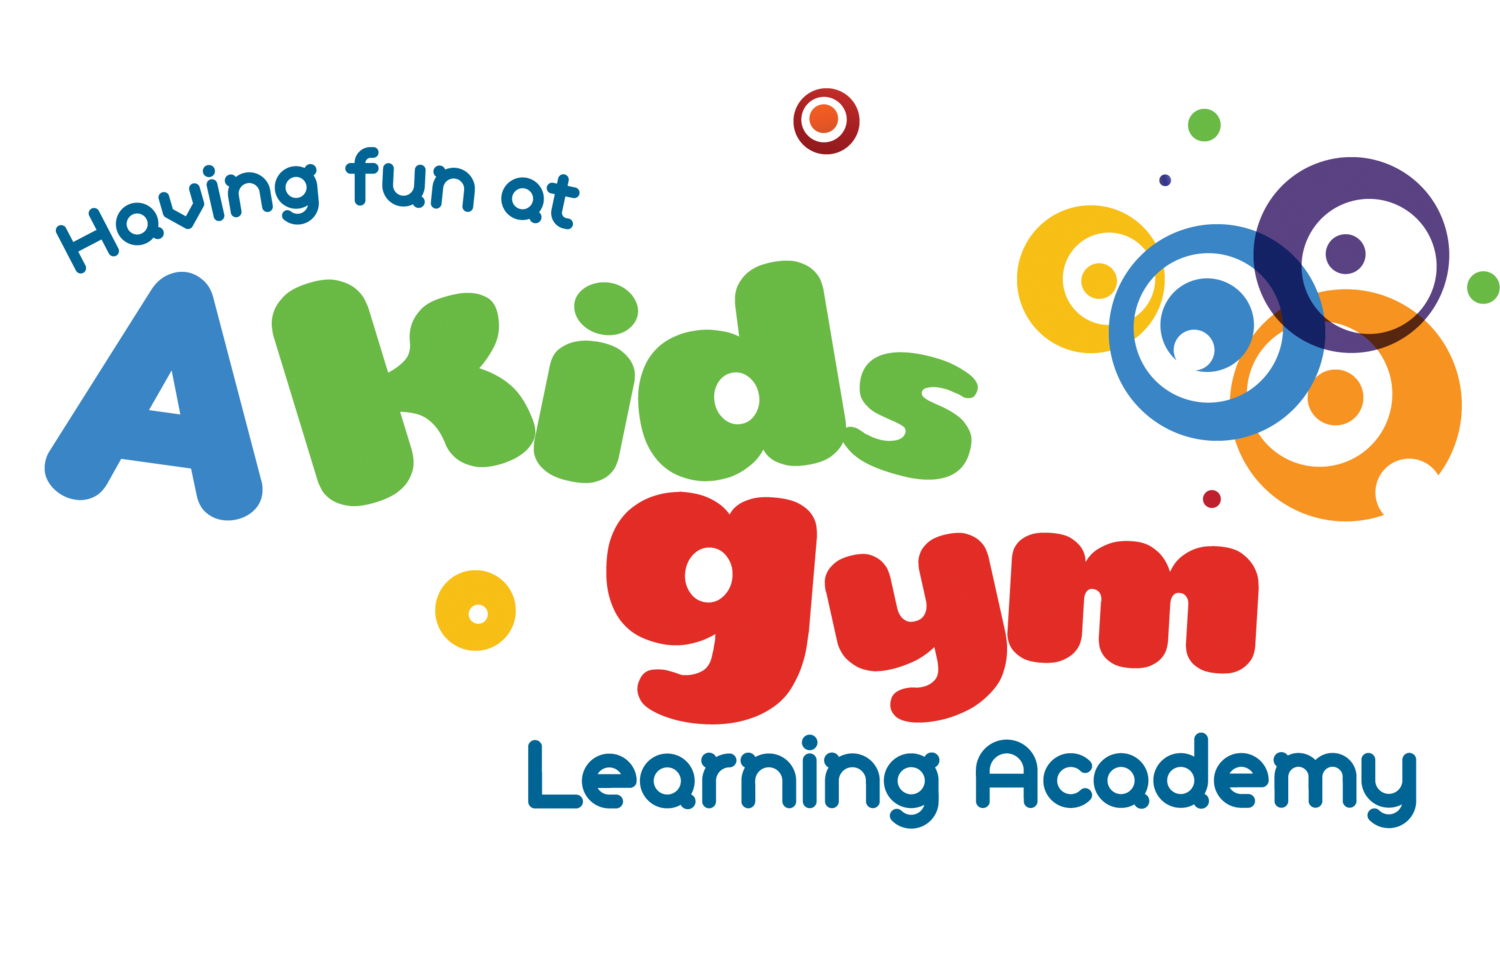 A Kids Gym | Educational Preschool and Gymnastics Learning Academy